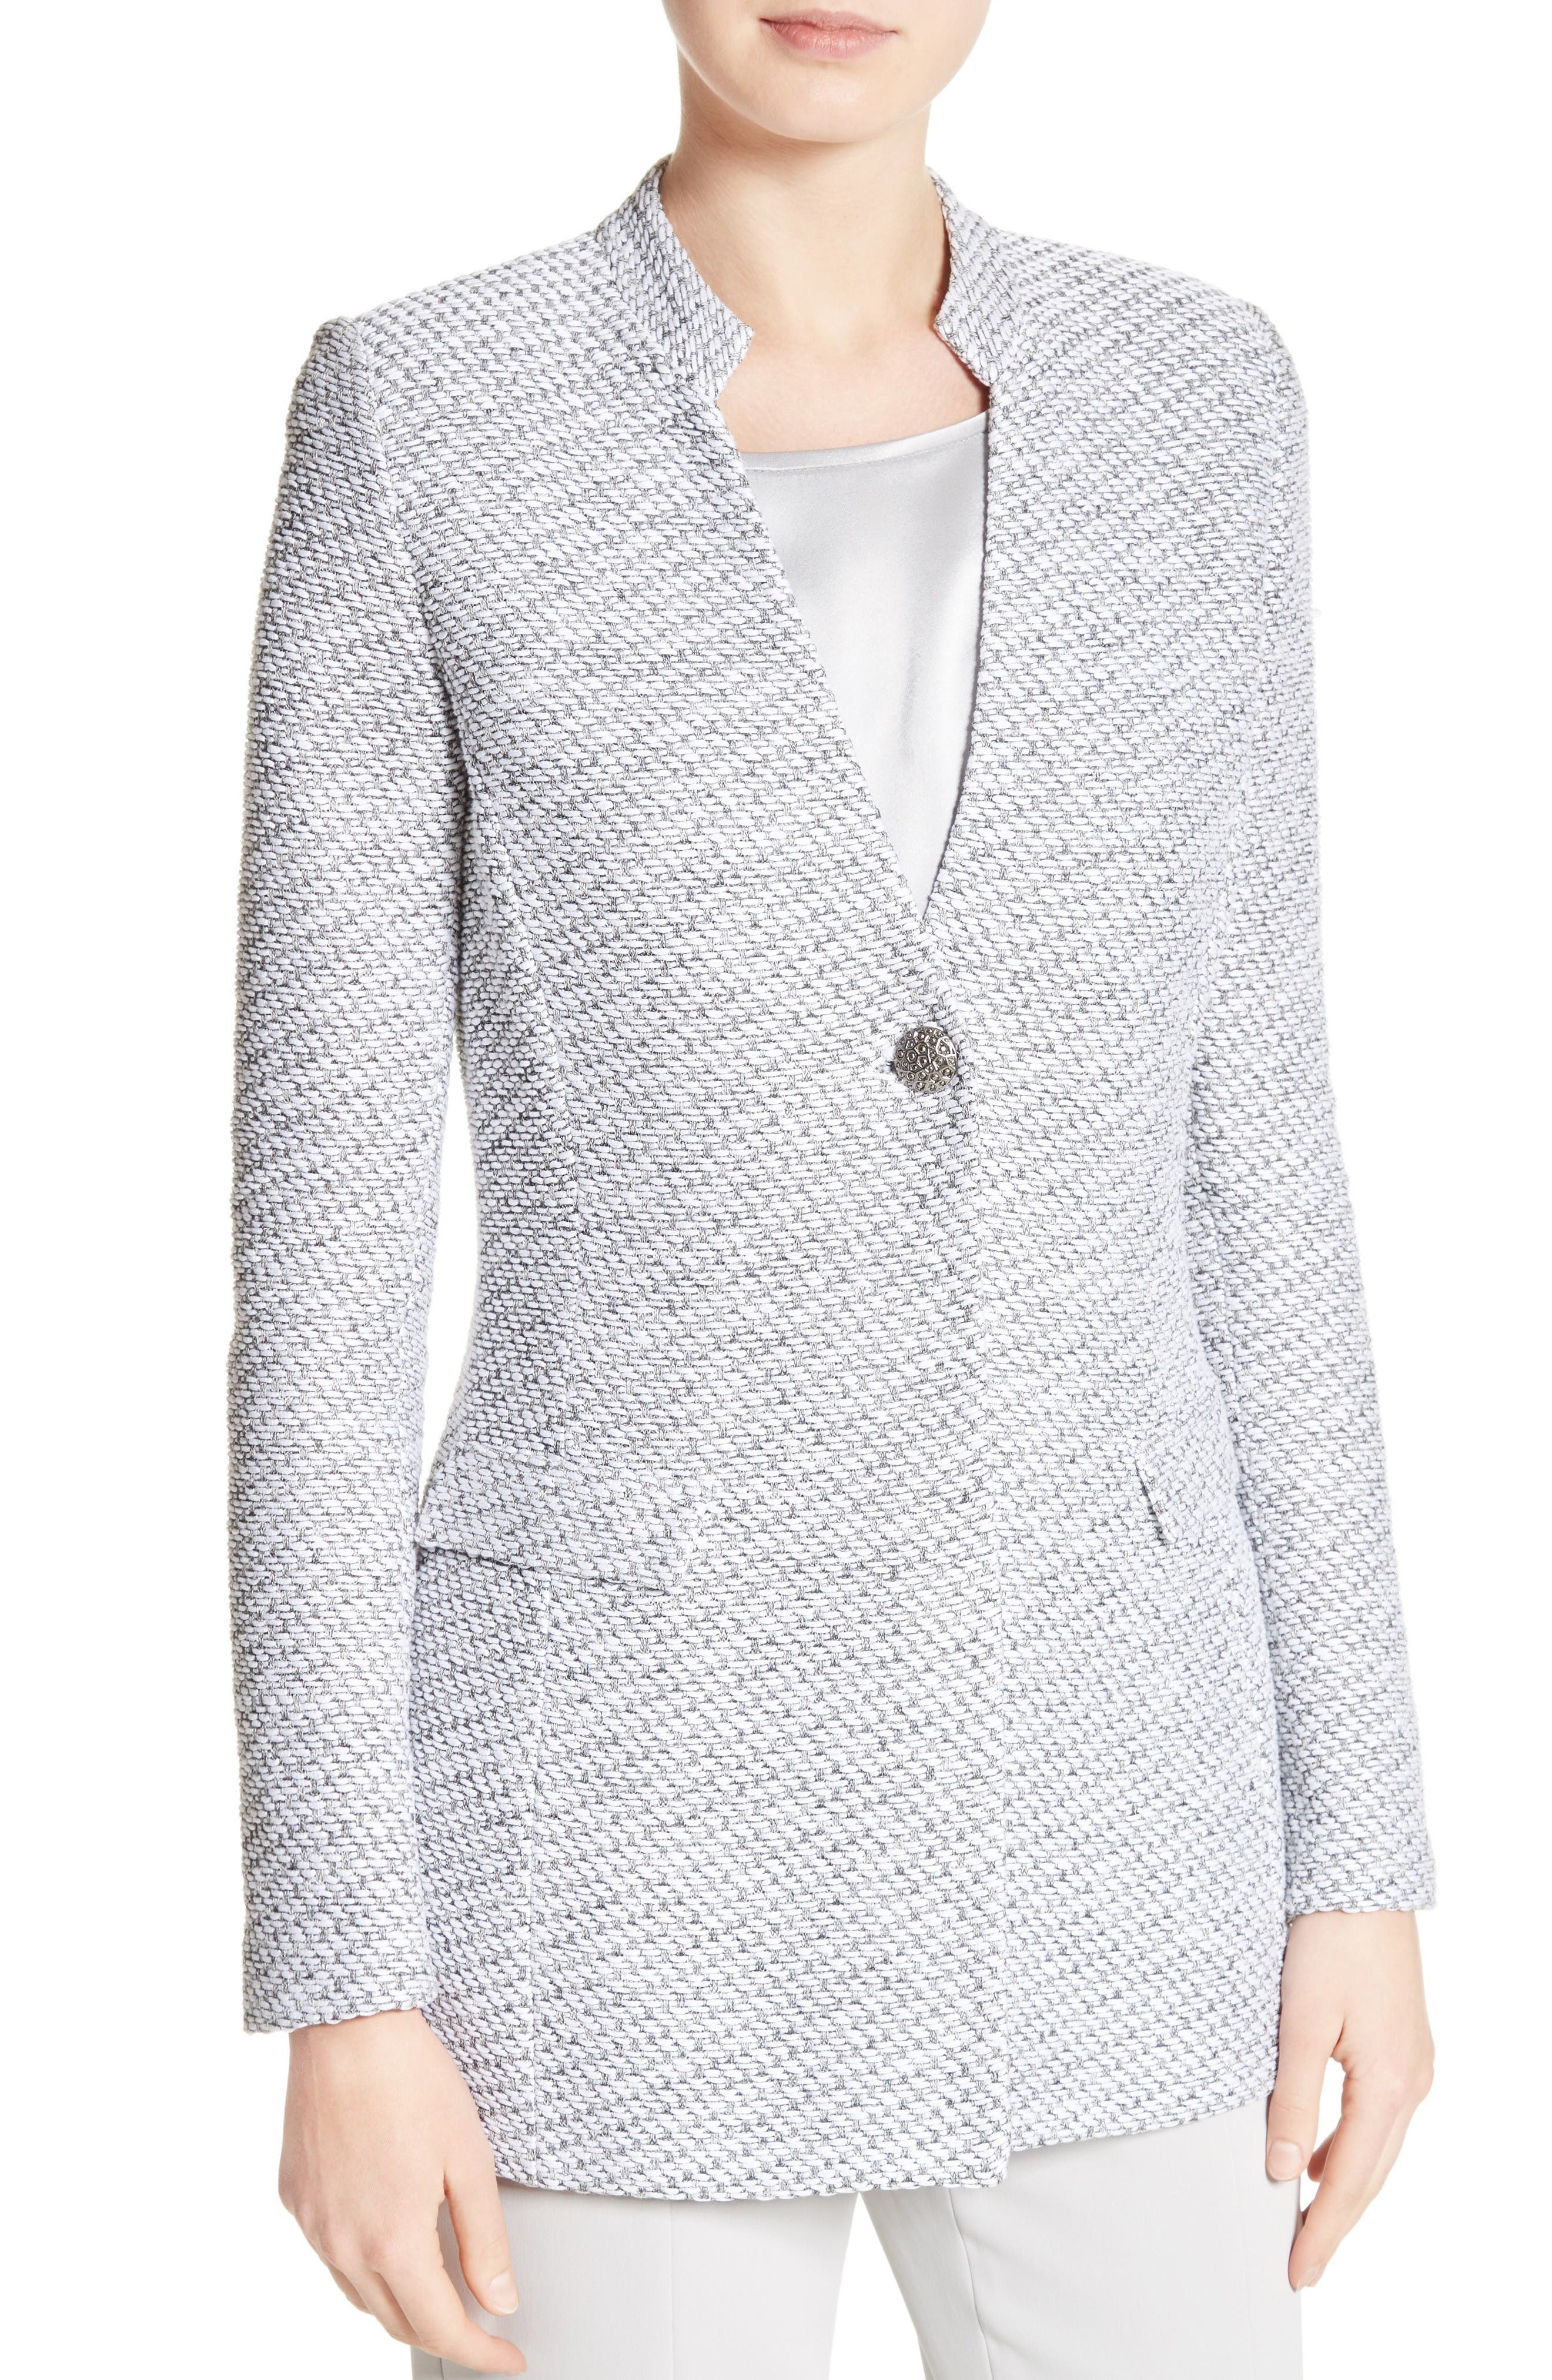 Gyan Knit Jacket,                             Alternate thumbnail 4, color,                             Bianco/ Mica Multi